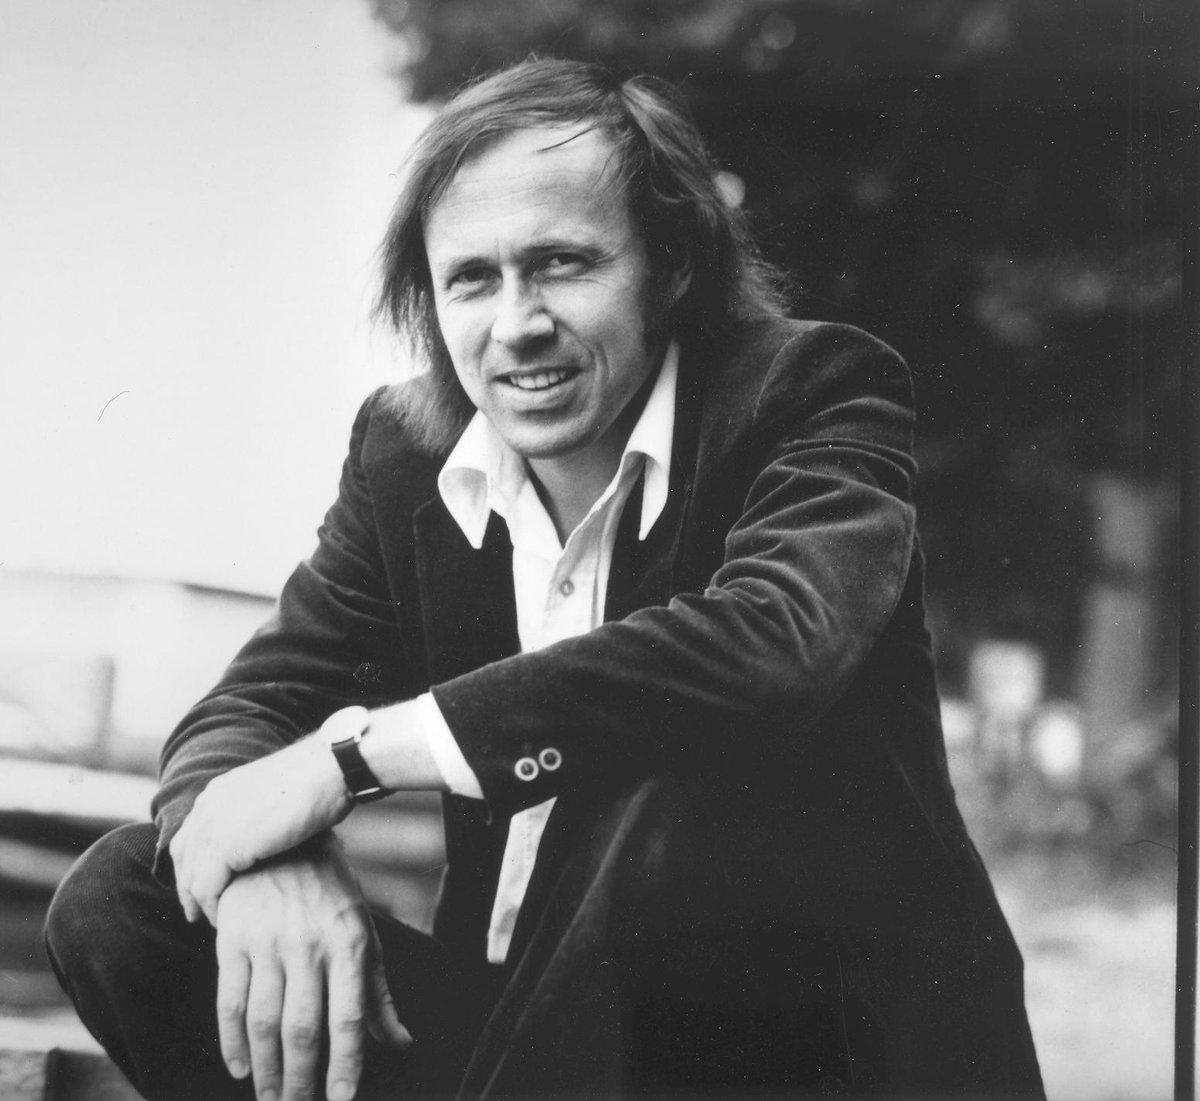 #Today in 1940 Birth of Dutch #composer Willem Frederik #Bon #MusicHistory #classicalmusic<br>http://pic.twitter.com/rII64sWTOv